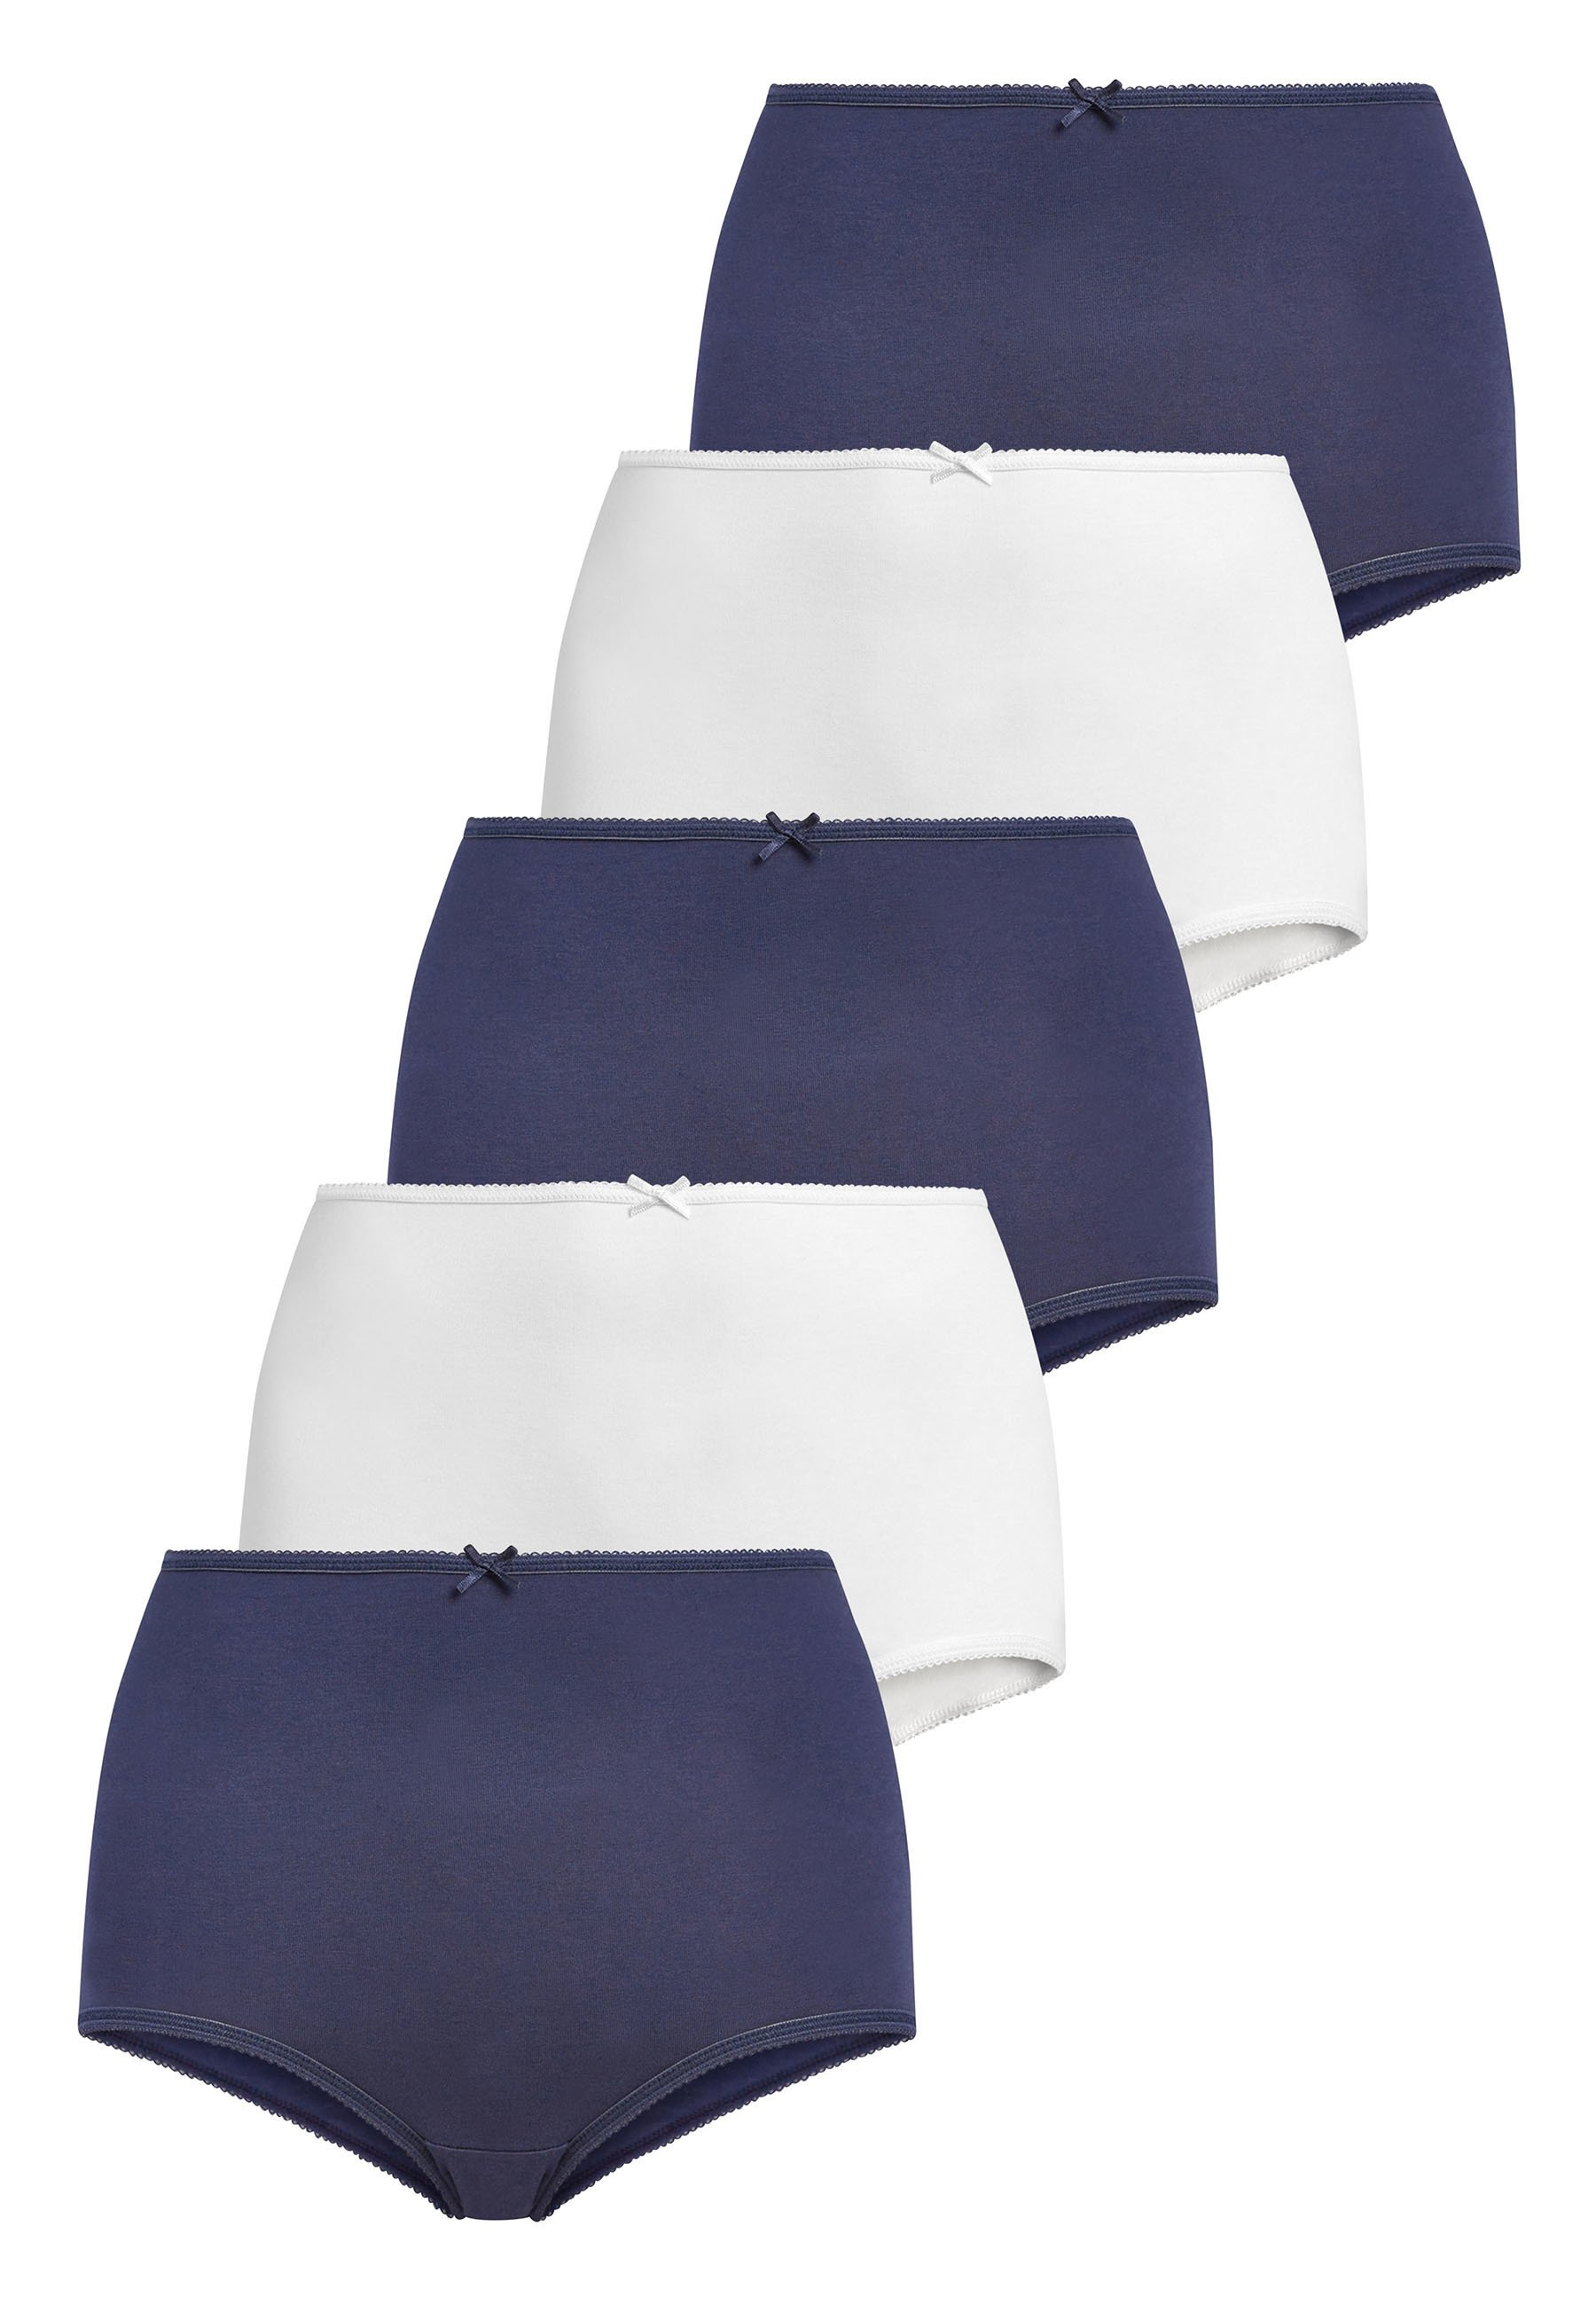 Femme NAVY/WHITE FULL BRIEF COTTON KNICKERS FIVE PACK - Shorty